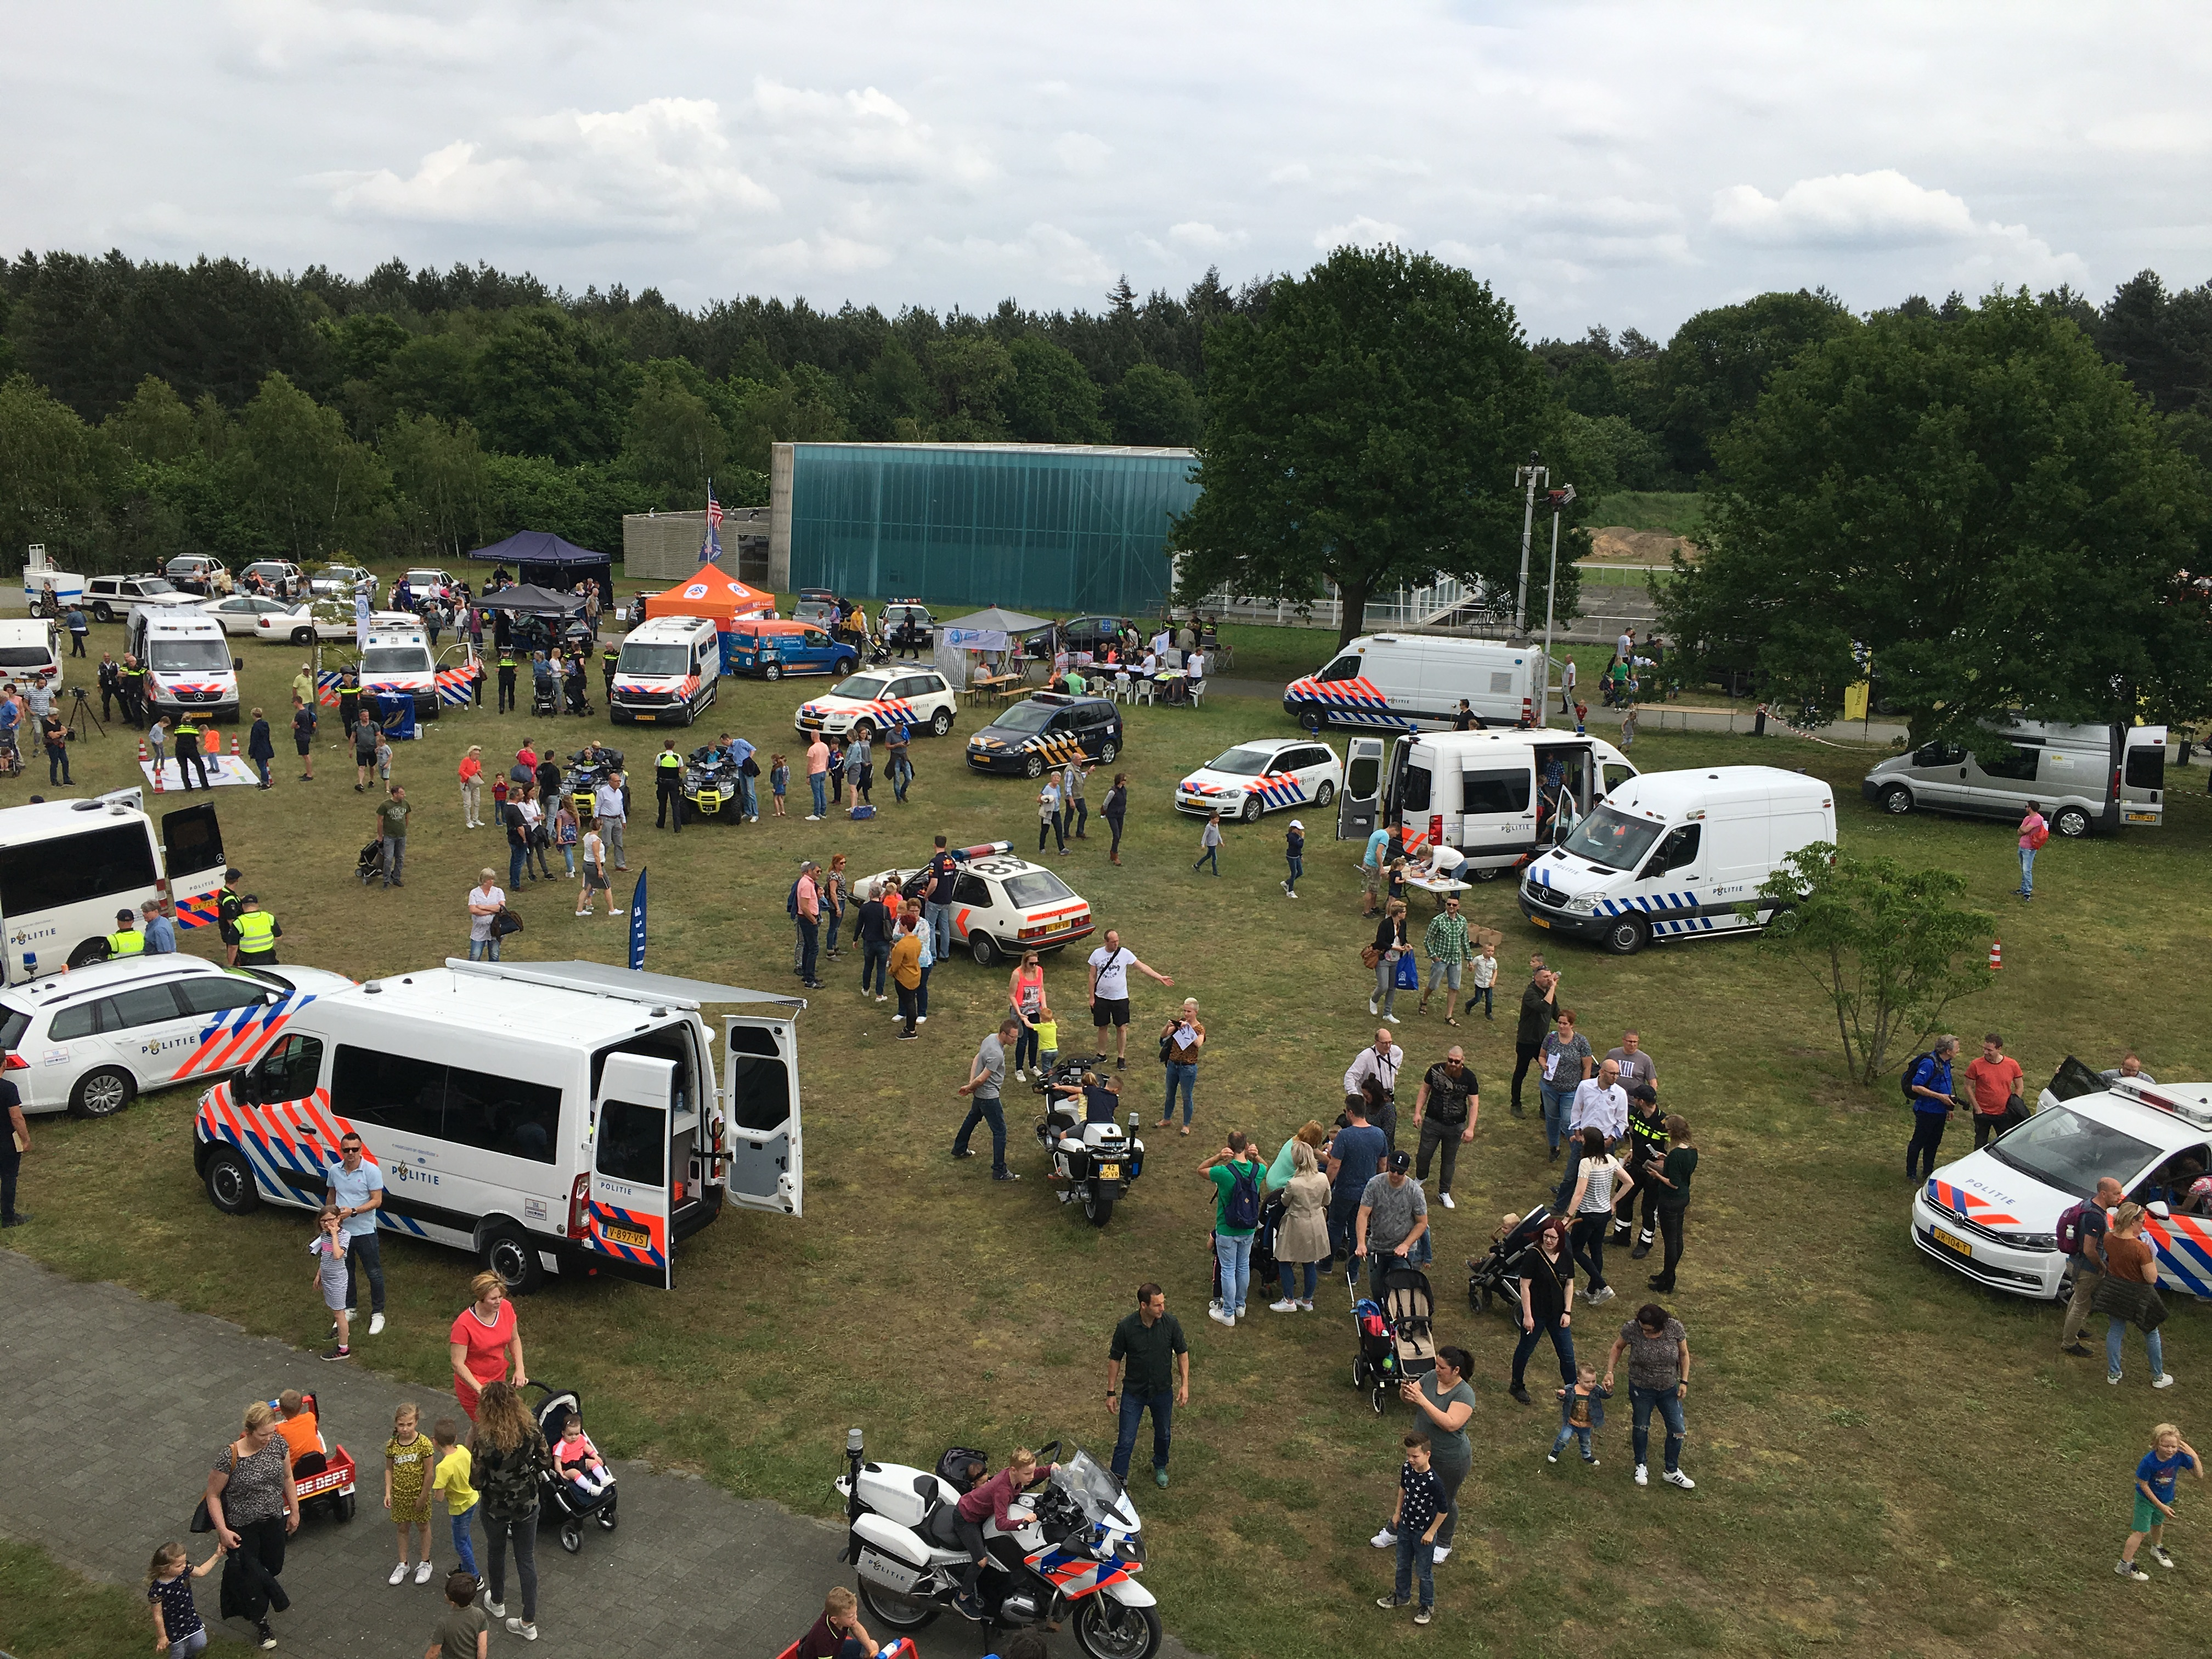 IPA Netherlands take part in the 4th 112 on Wheels event